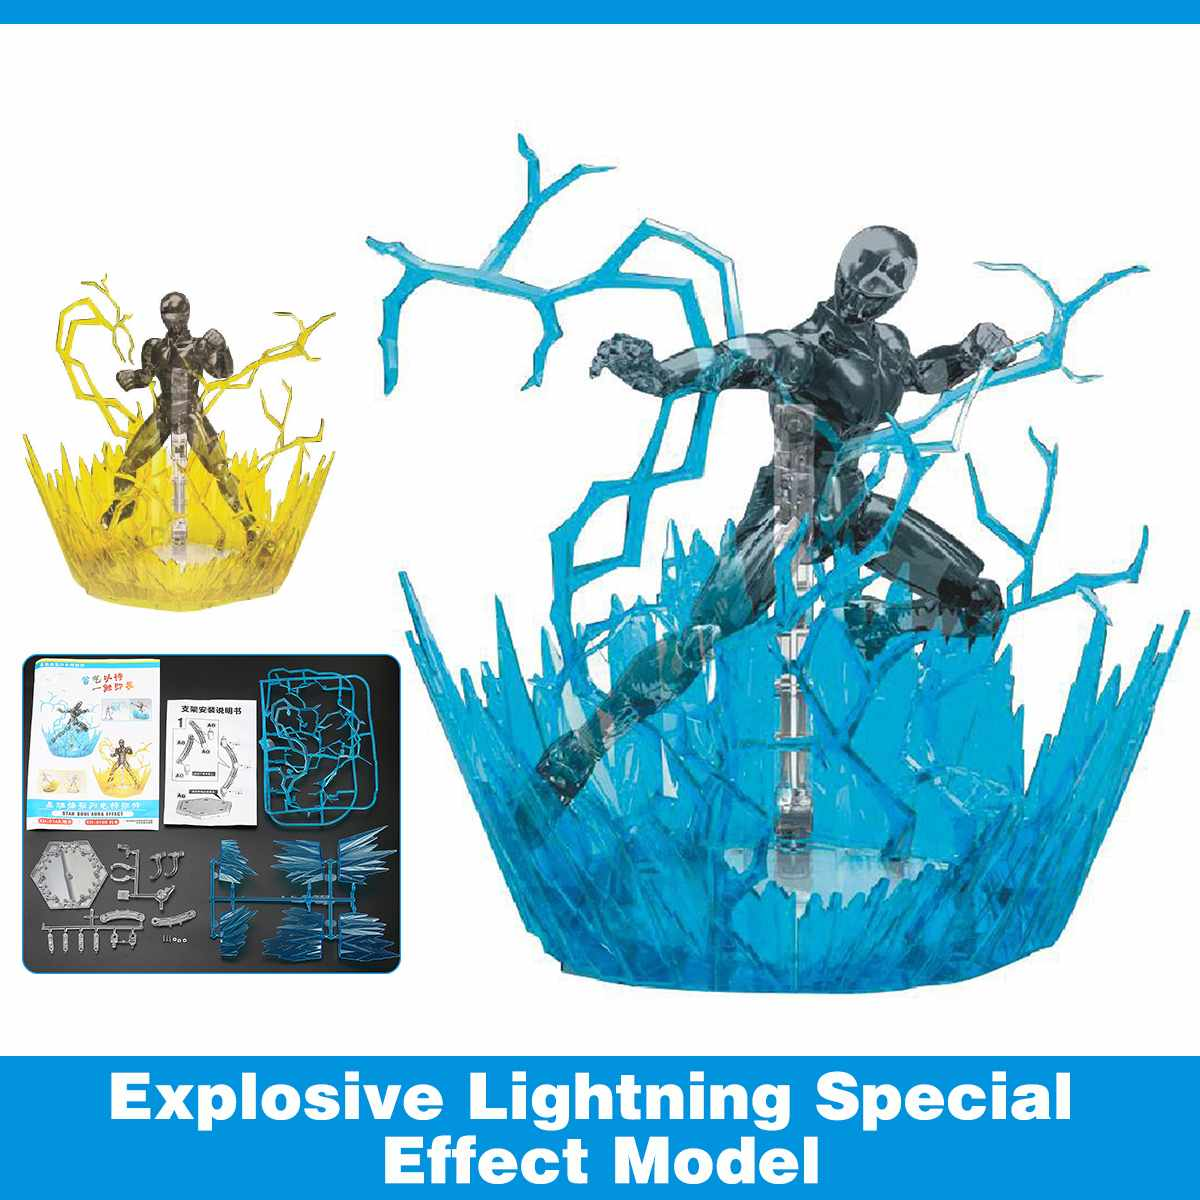 Xh-014 Mold Star Society Star Soul Dragon Ball for Lightning/Aeration/Ground Crack/Explosion Scene Special Effects With BracketXh-014 Mold Star Society Star Soul Dragon Ball for Lightning/Aeration/Ground Crack/Explosion Scene Special Effects With Bracket